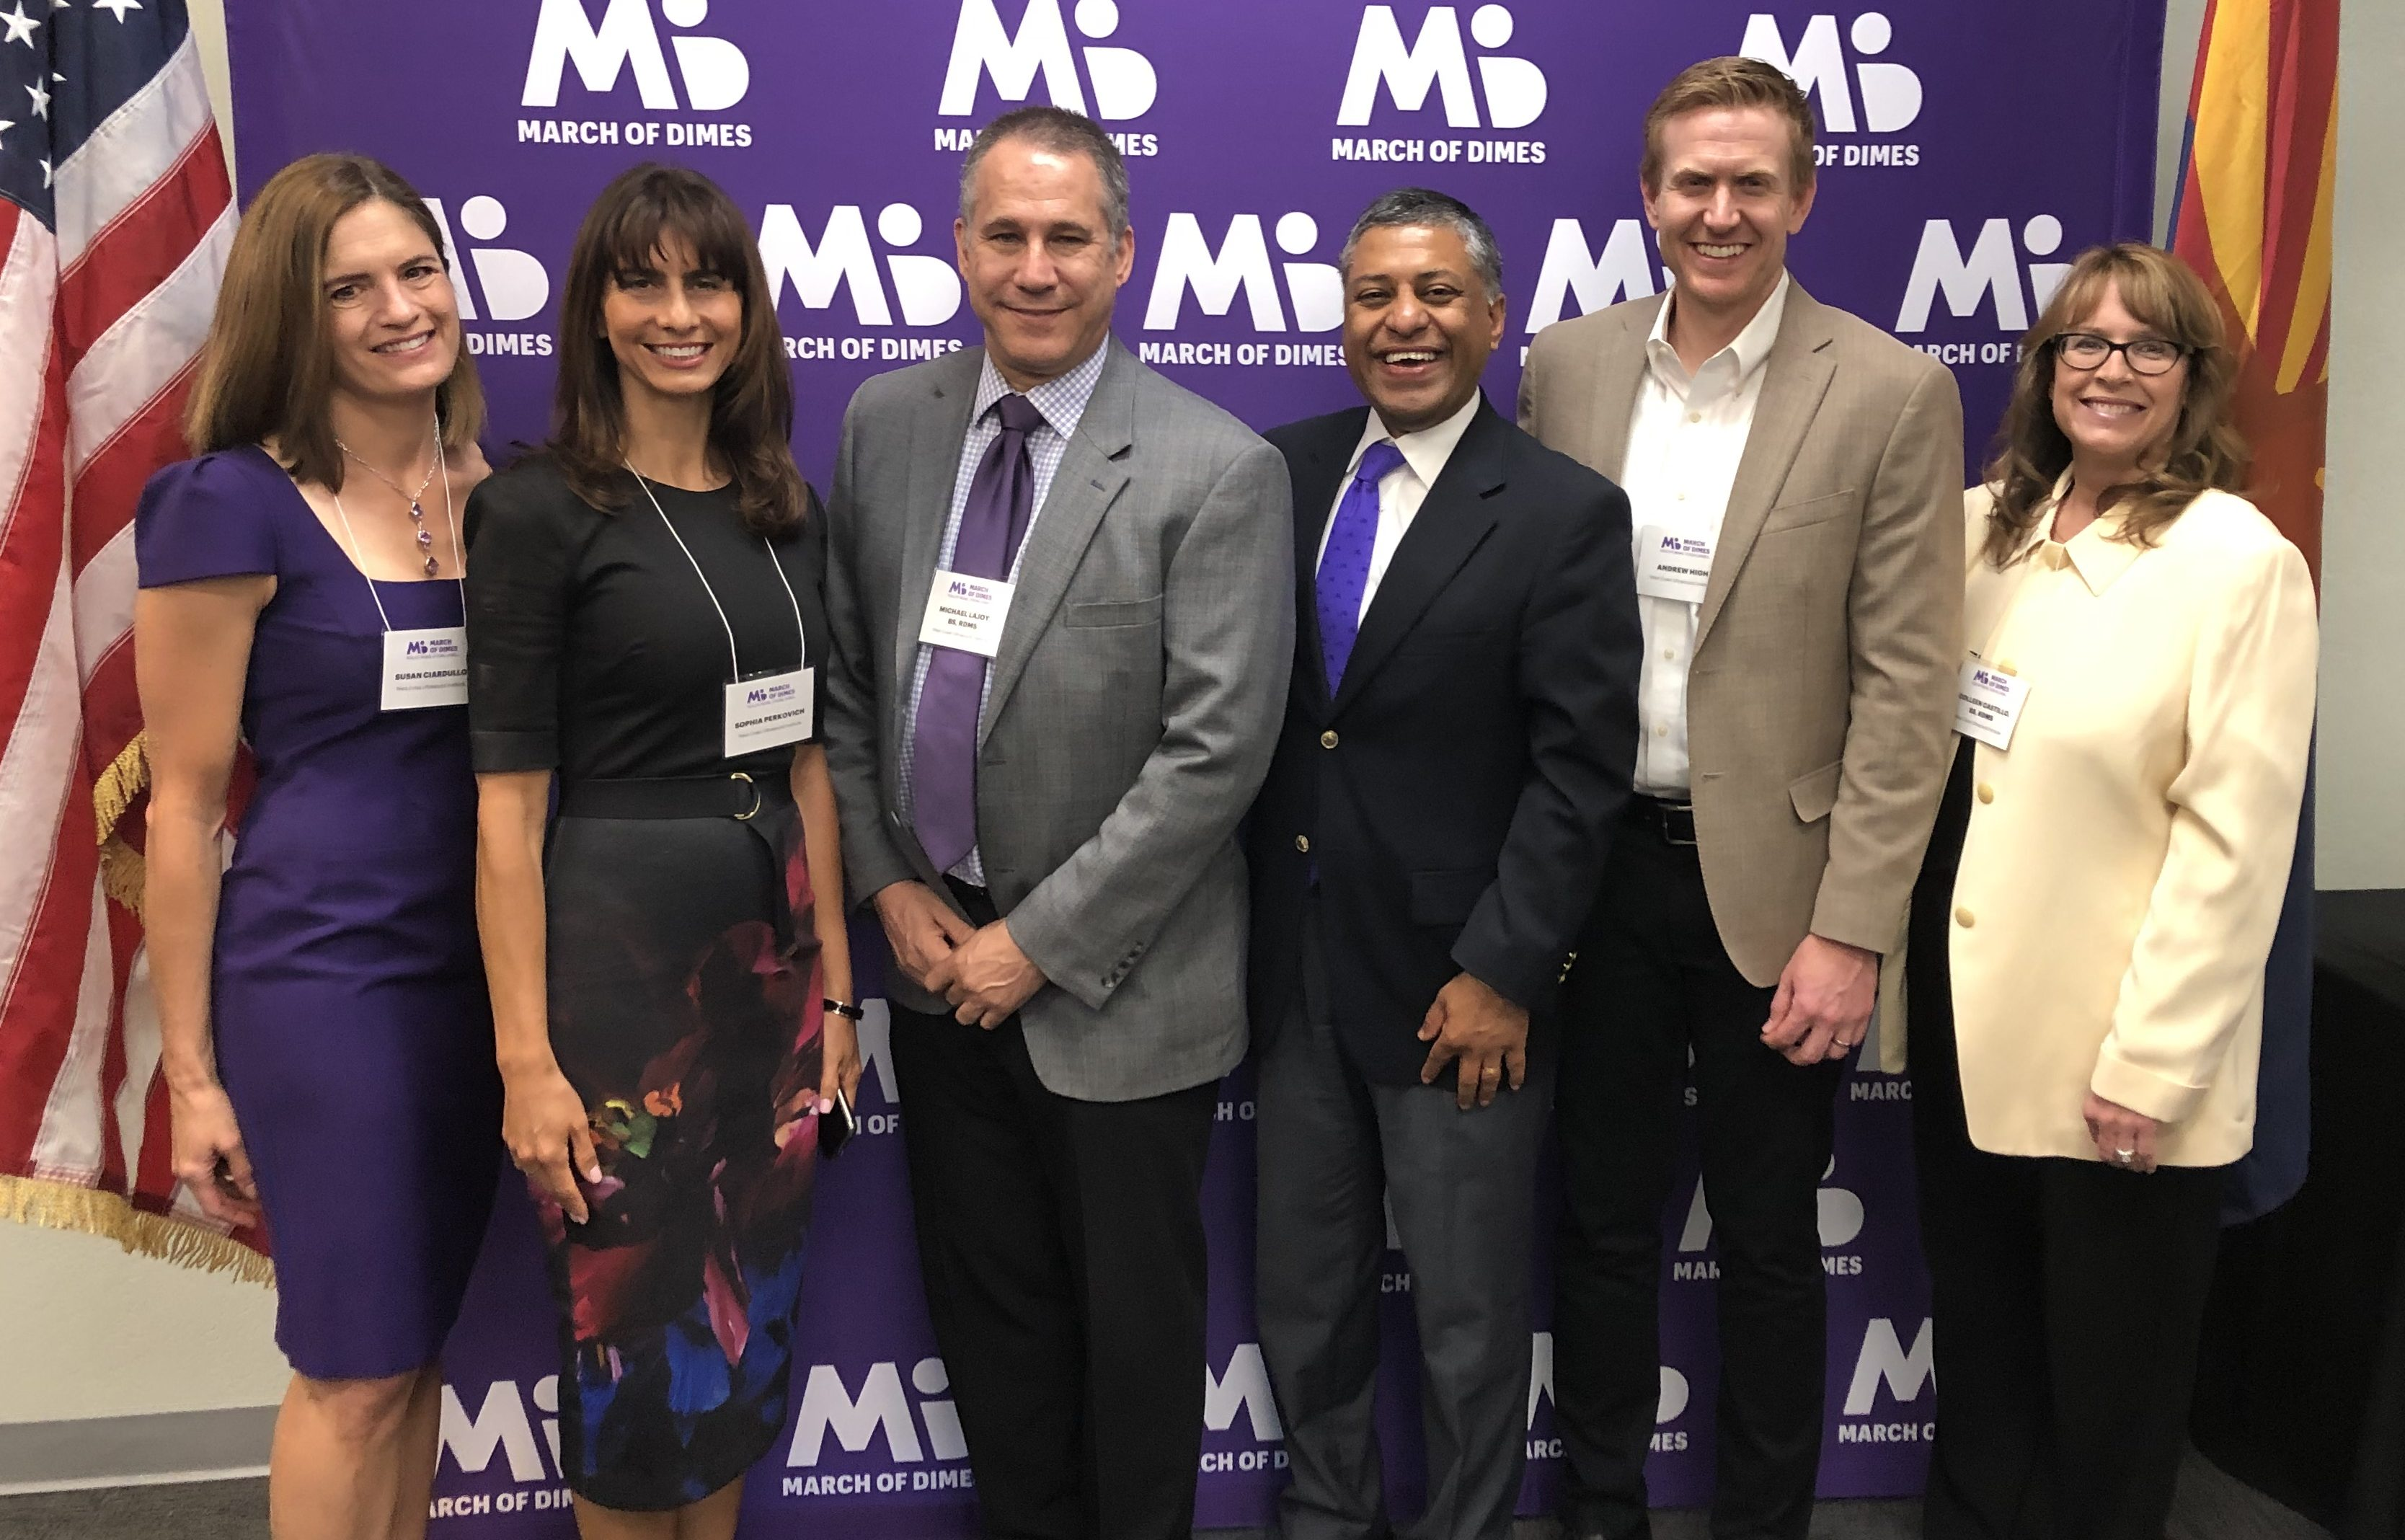 WCUI sponsors the March of Dimes/Arianna's Law signing event in Arizona